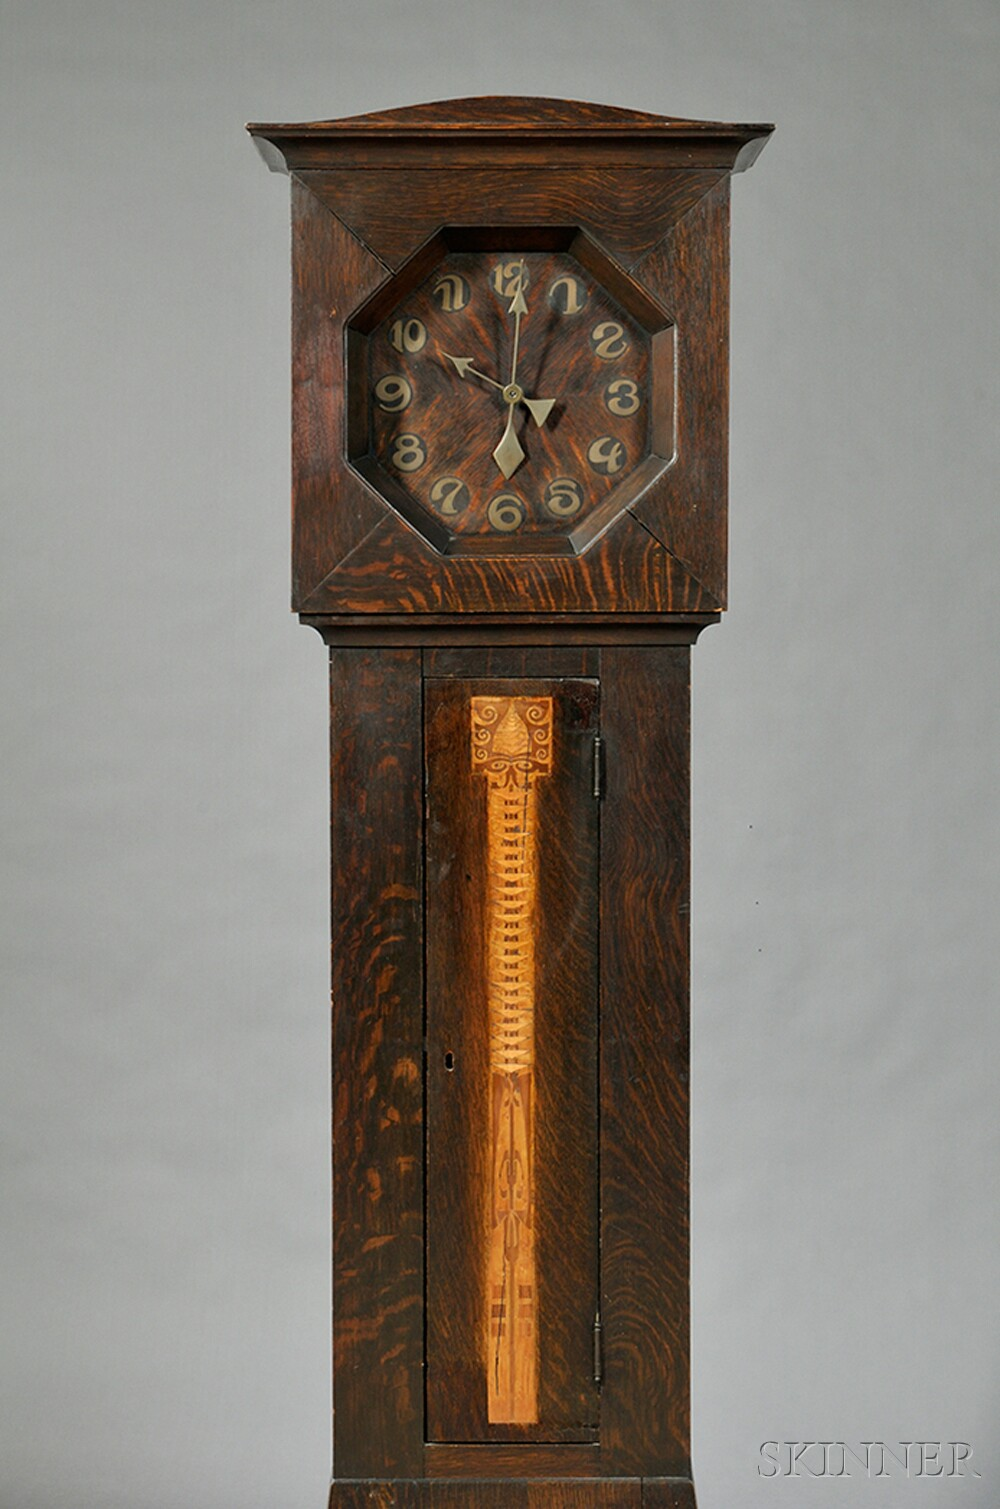 Shop of the crafters arts crafts tall clock sale for Arts and crafts clocks for sale